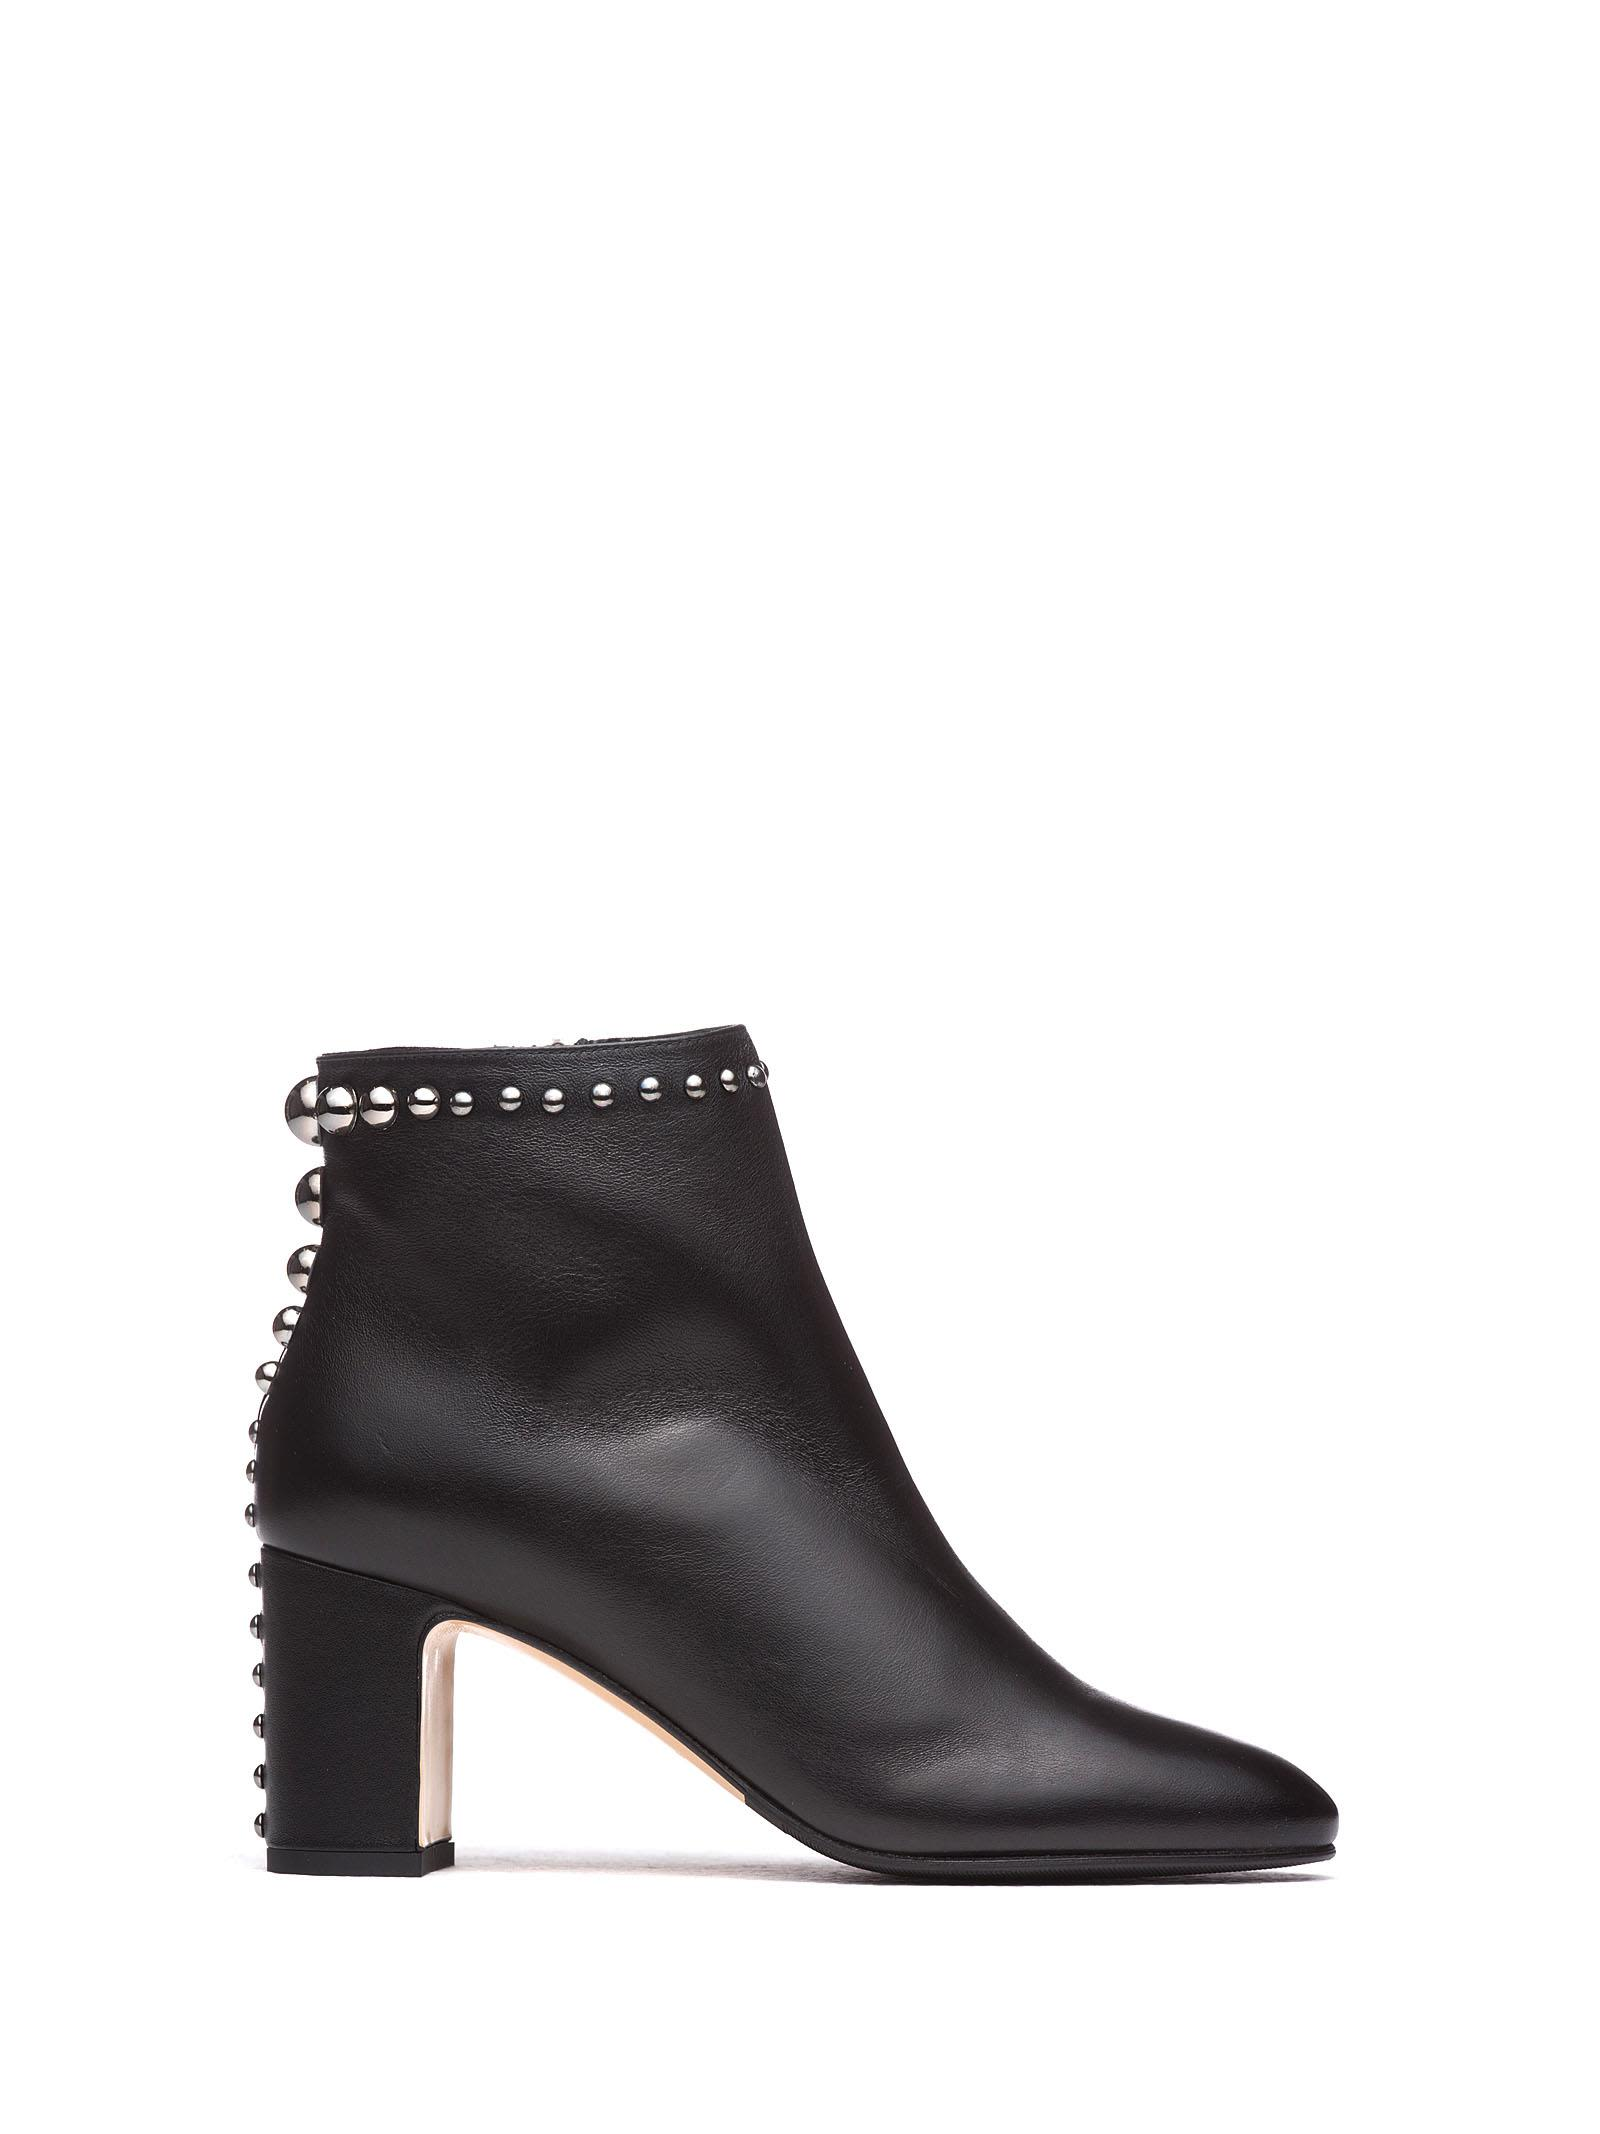 NINALILOU Ankle Boots With Studs in Nero